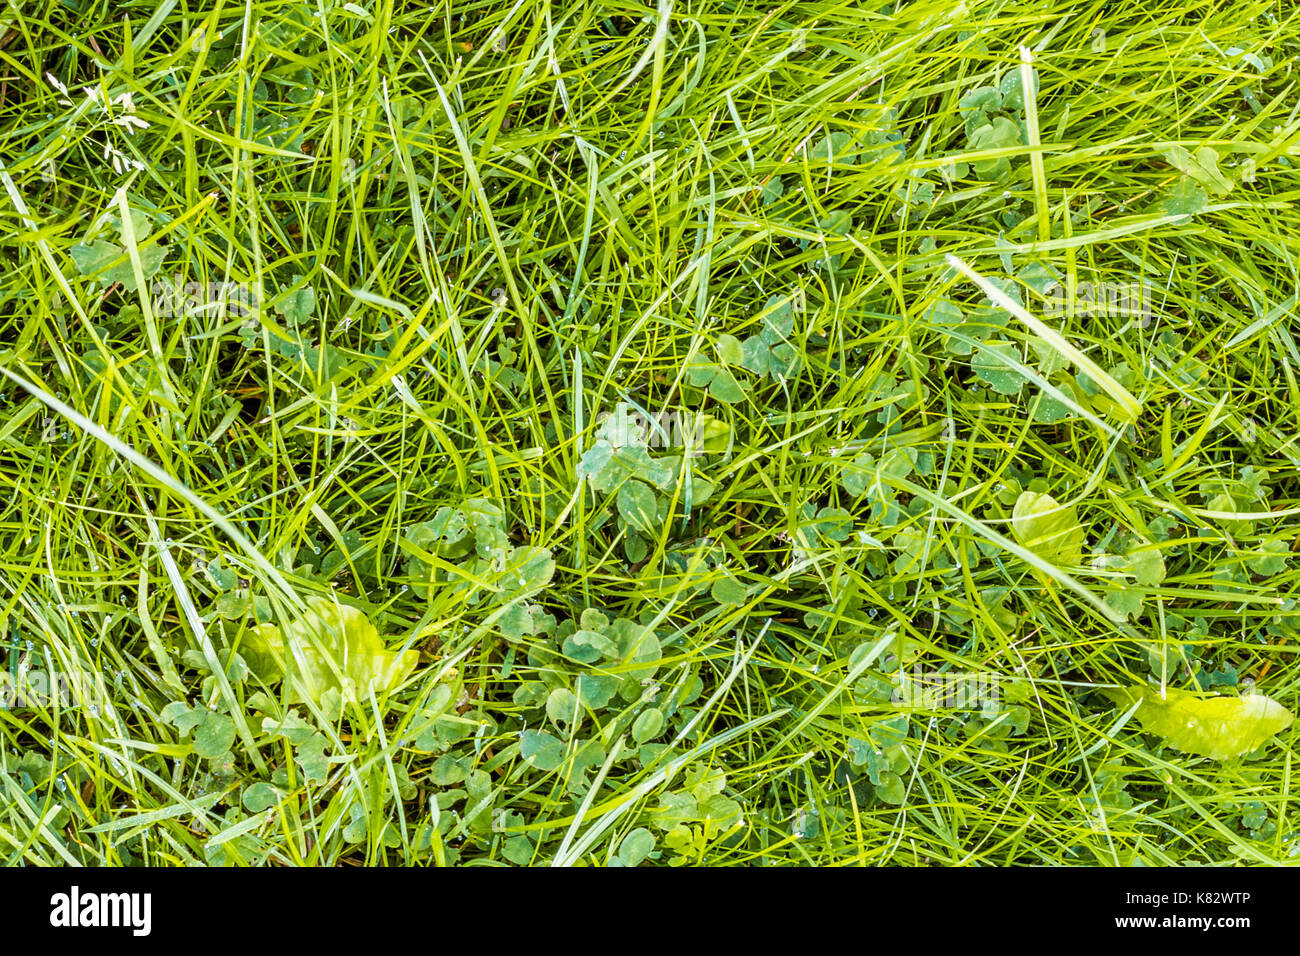 Green grass texture with natural patterns view from above can be used as background. - Stock Image